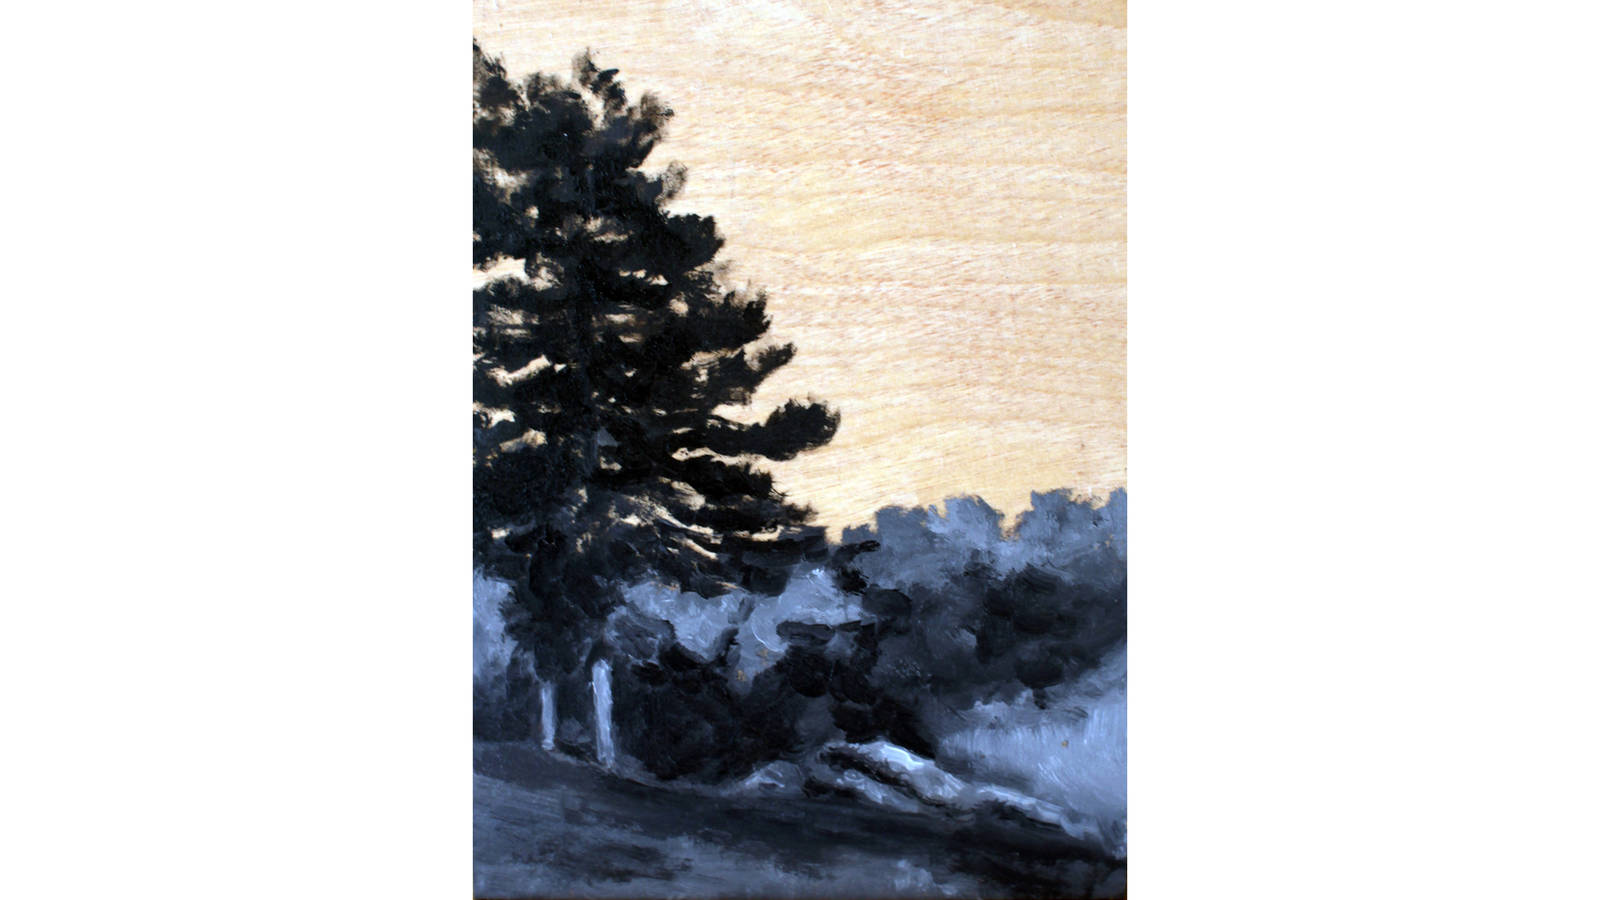 """<h3 style=""""text-align: center; padding: 50px;""""><span class=""""text-Intro-style"""">Hot Springs National Park, Arkansas. Black and white oil paint on wood, 2016.</span></h3>"""